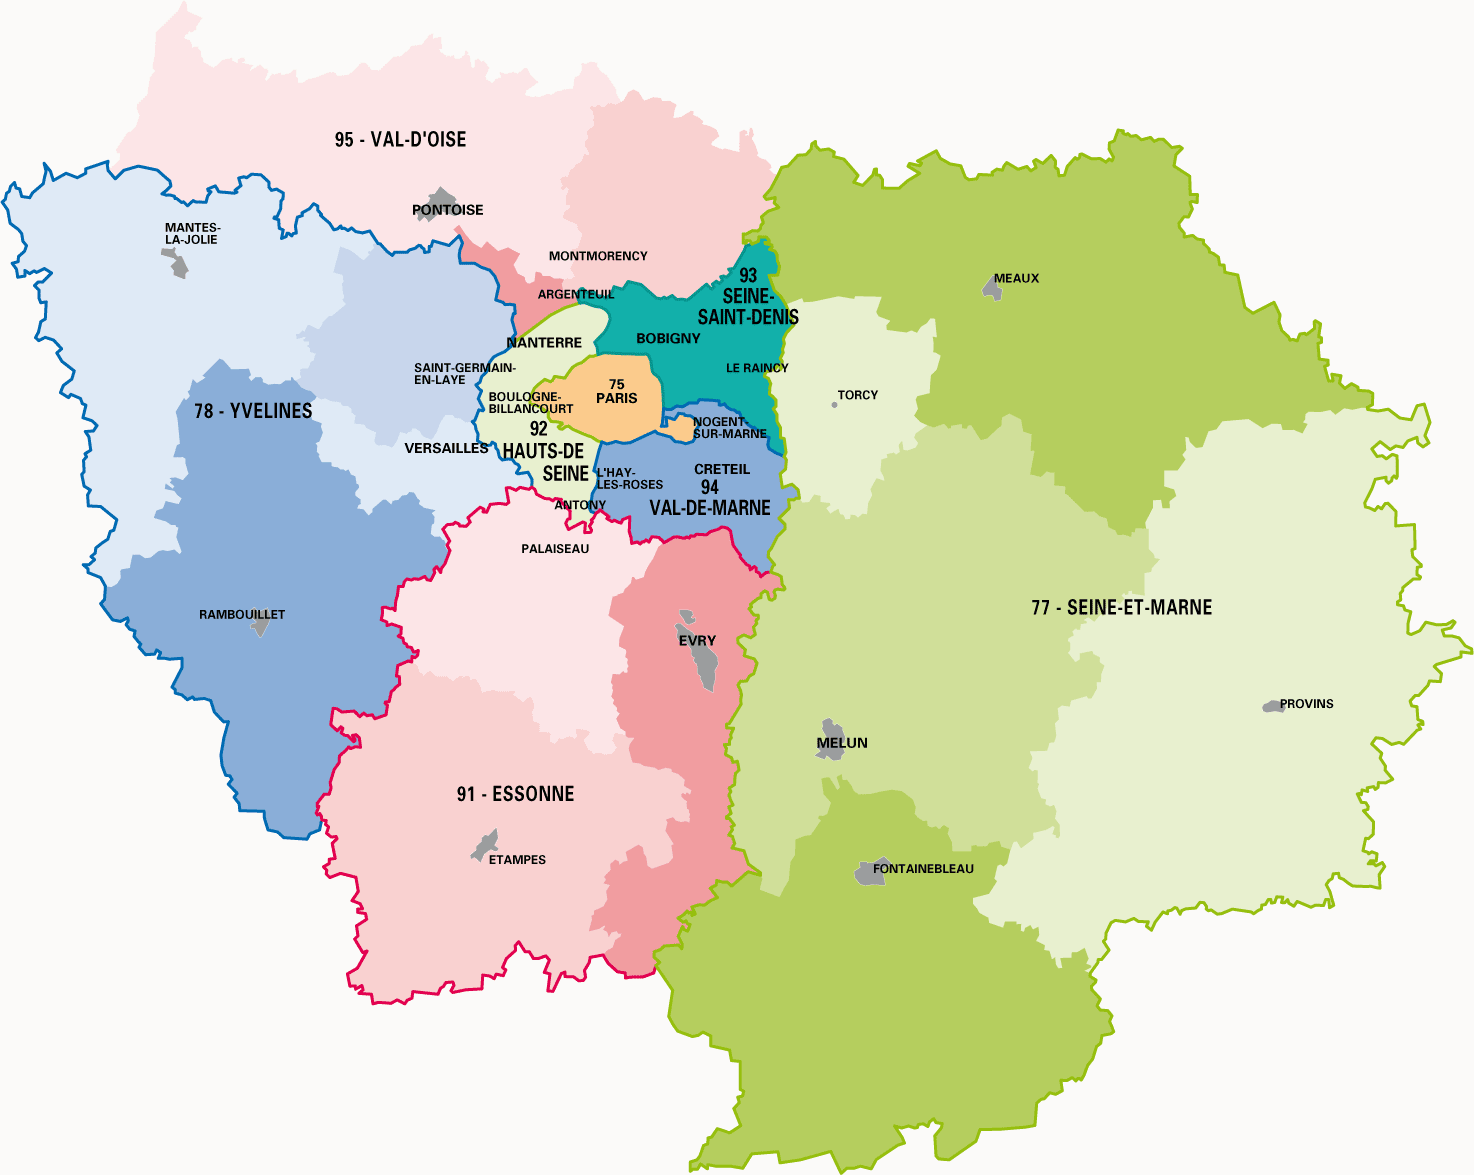 départements ile de france carte La carte des départements de la région Ile de France